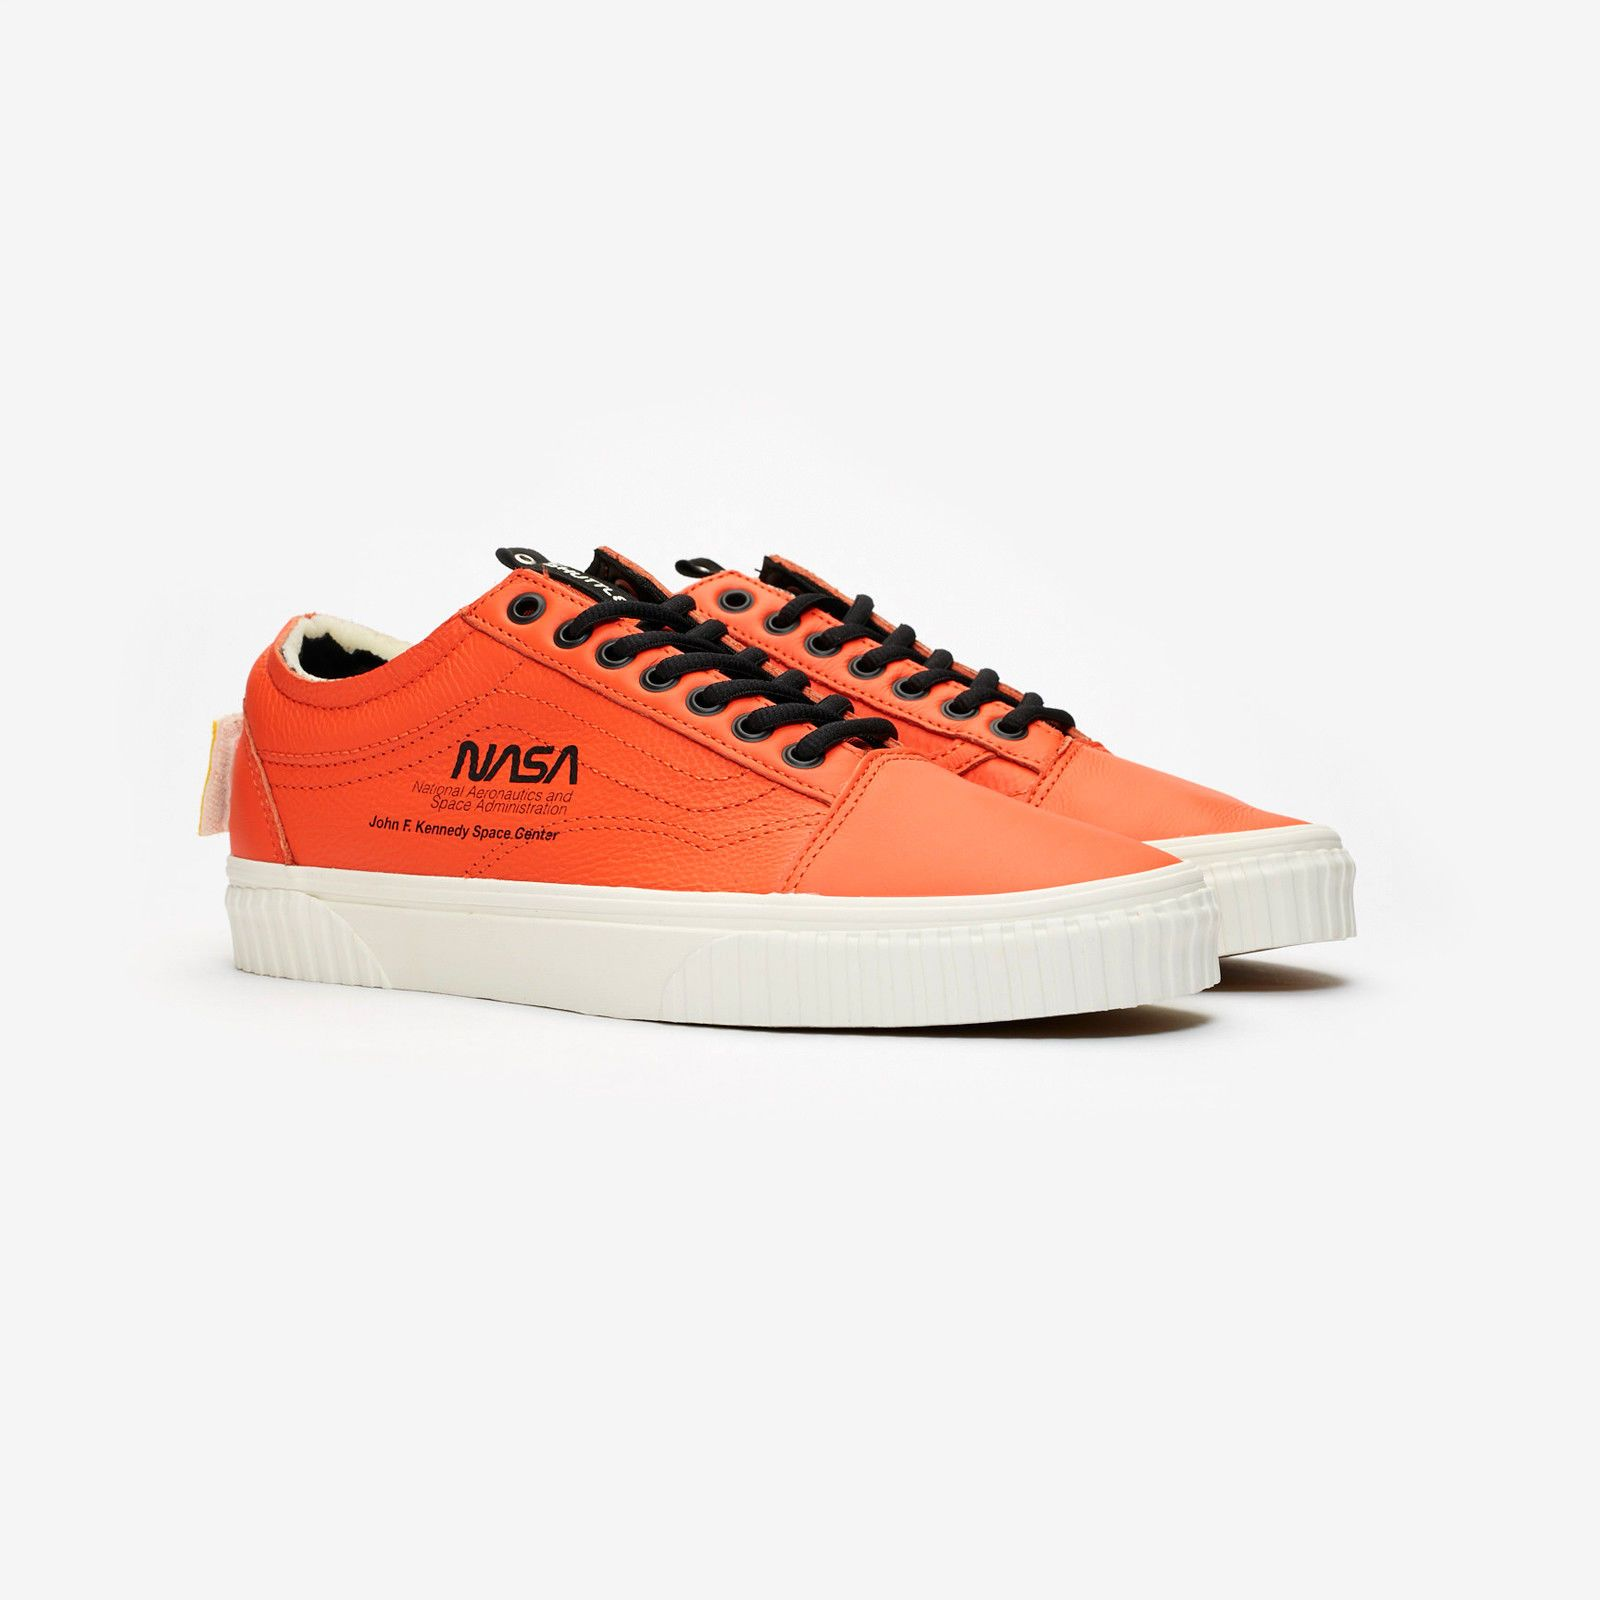 d6cf6a8c2690d5 Details about NASA x Vans Old Skool Space Voyager Firecracker Red ...